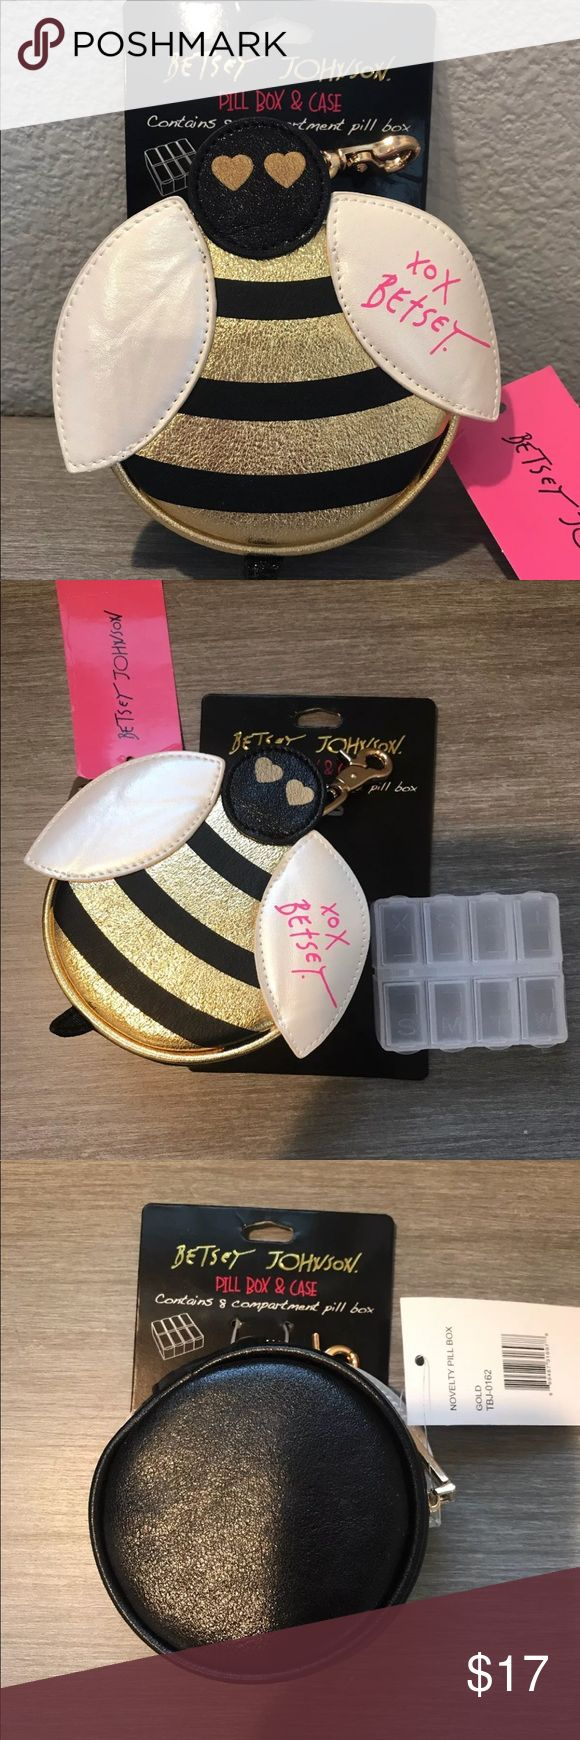 Betsey Johnson Bumble Bee Pill Box and Case Betsey Johnson Bee Pill Box and Case. Contains 8 compartment Pill Box. Super cute!! Has a gold clip on. Betsey Johnson Accessories